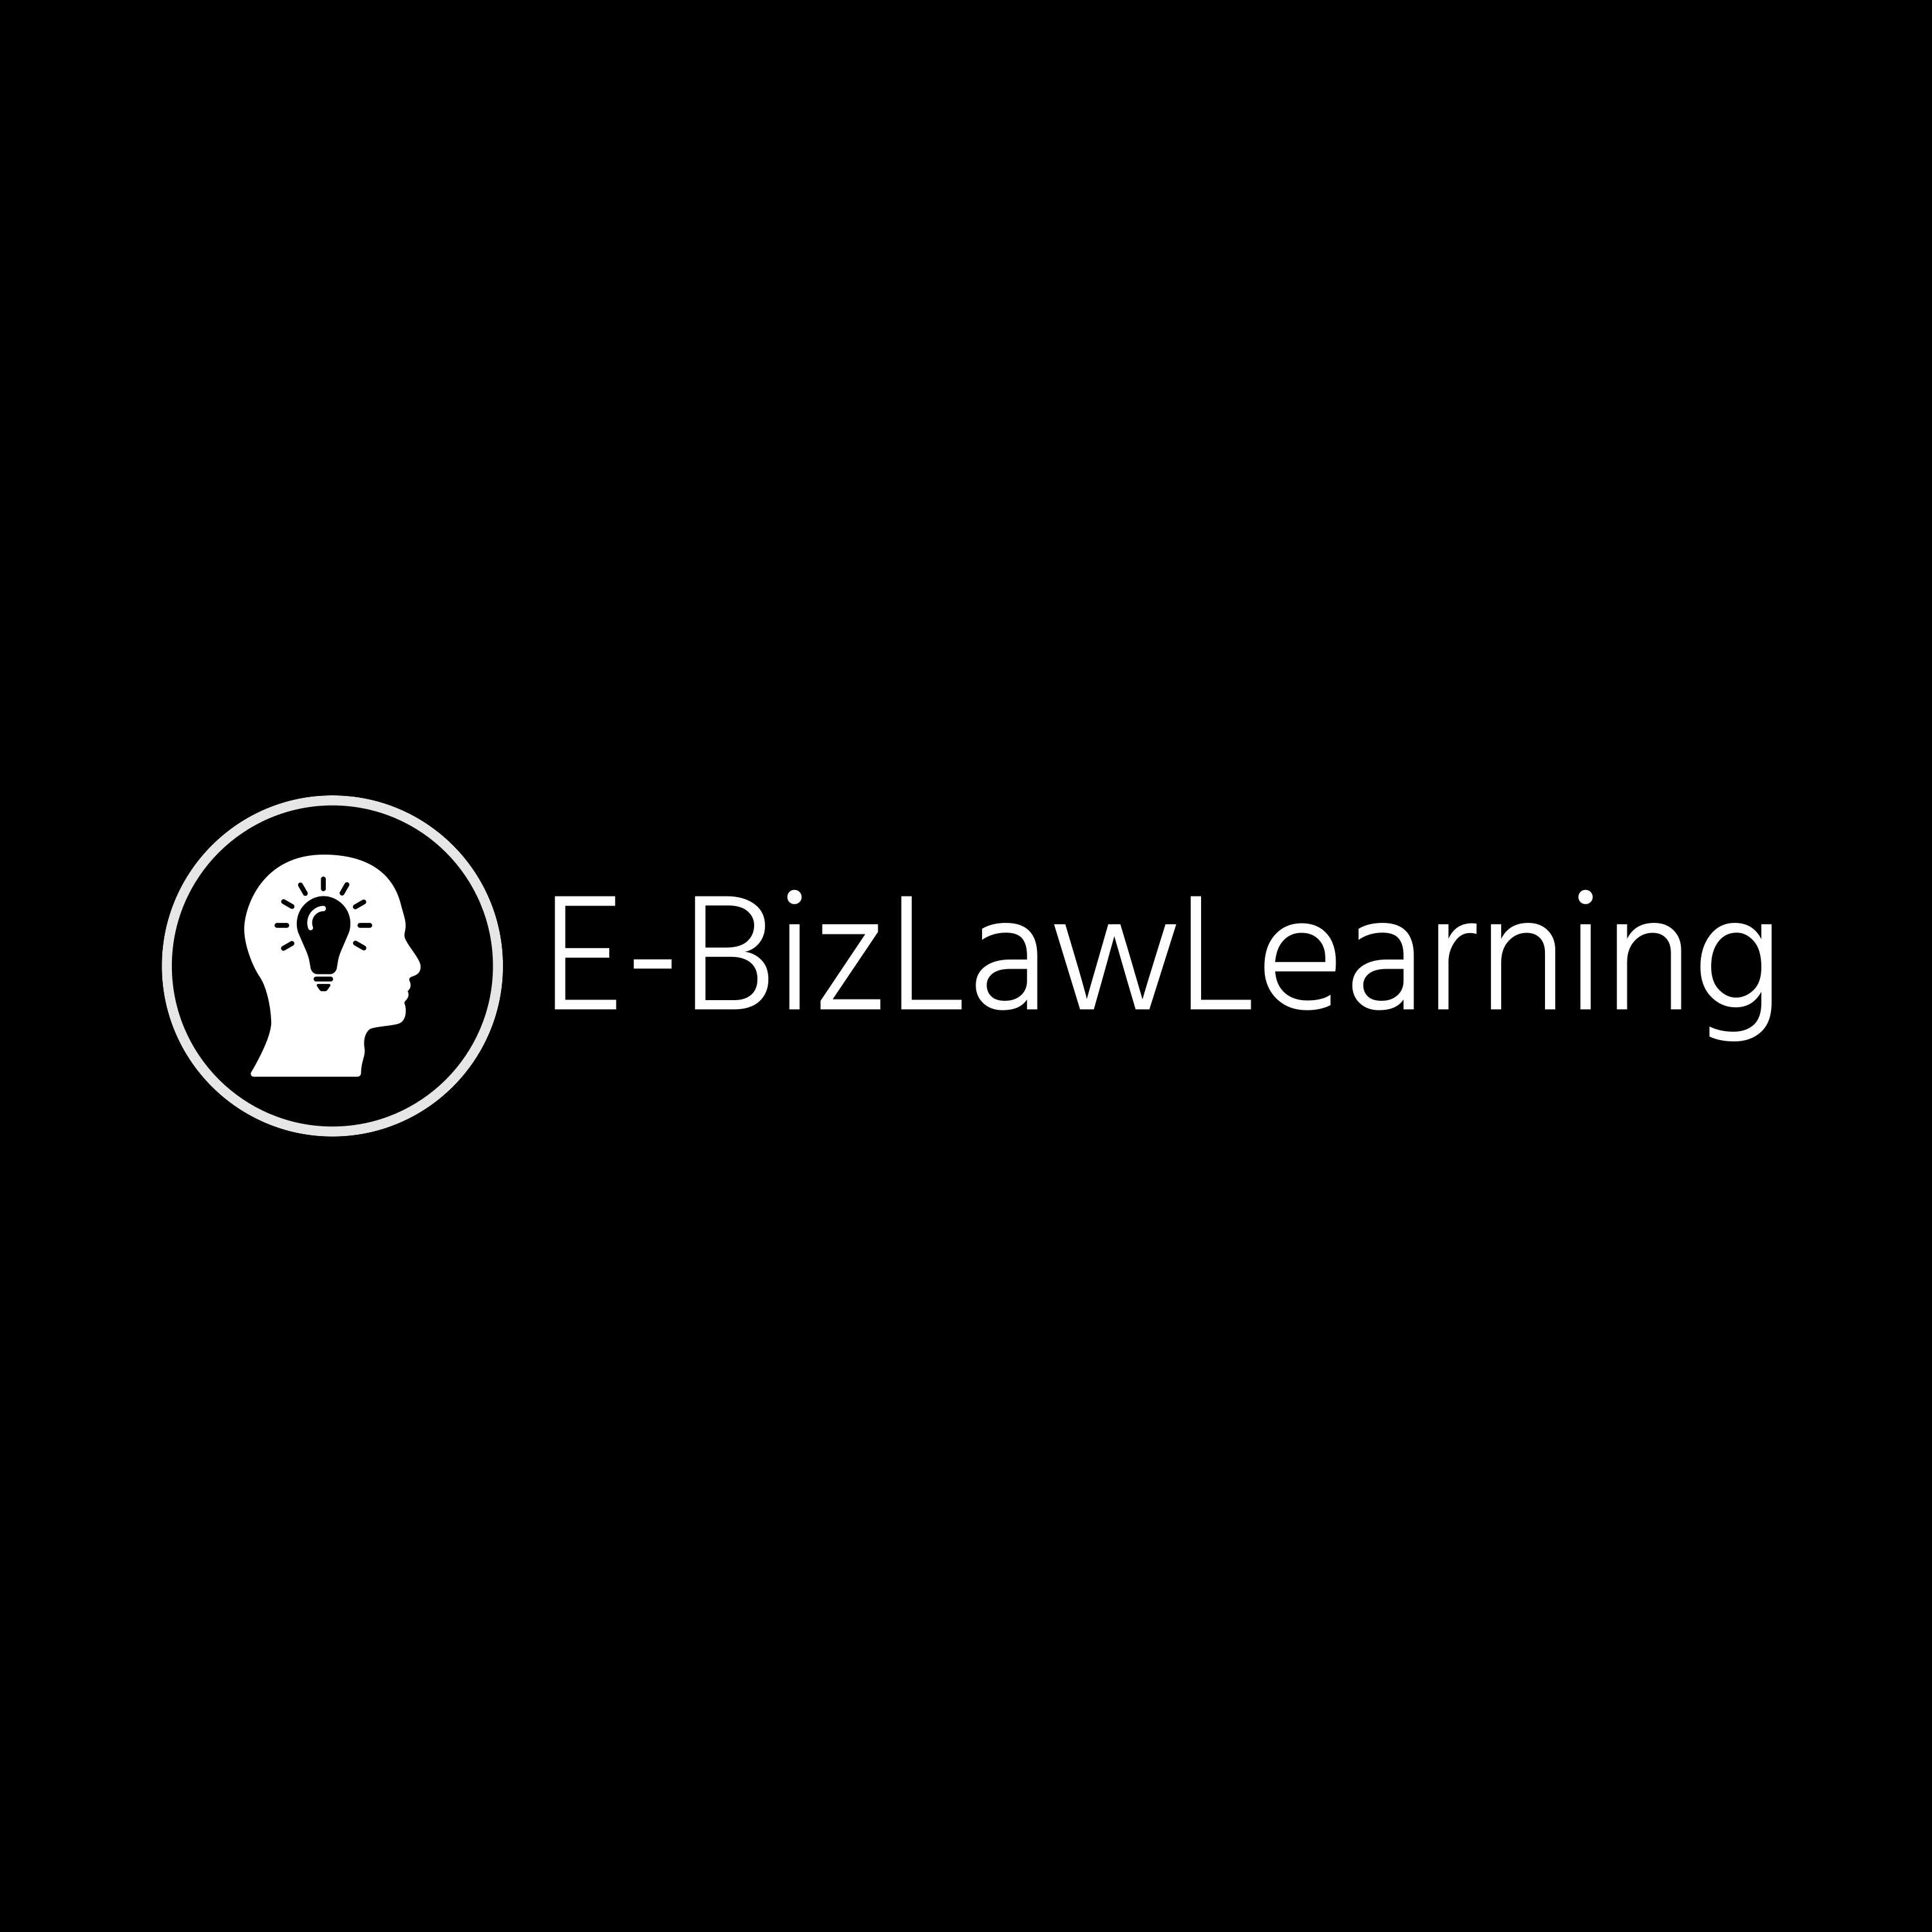 E-BizLaw Learning